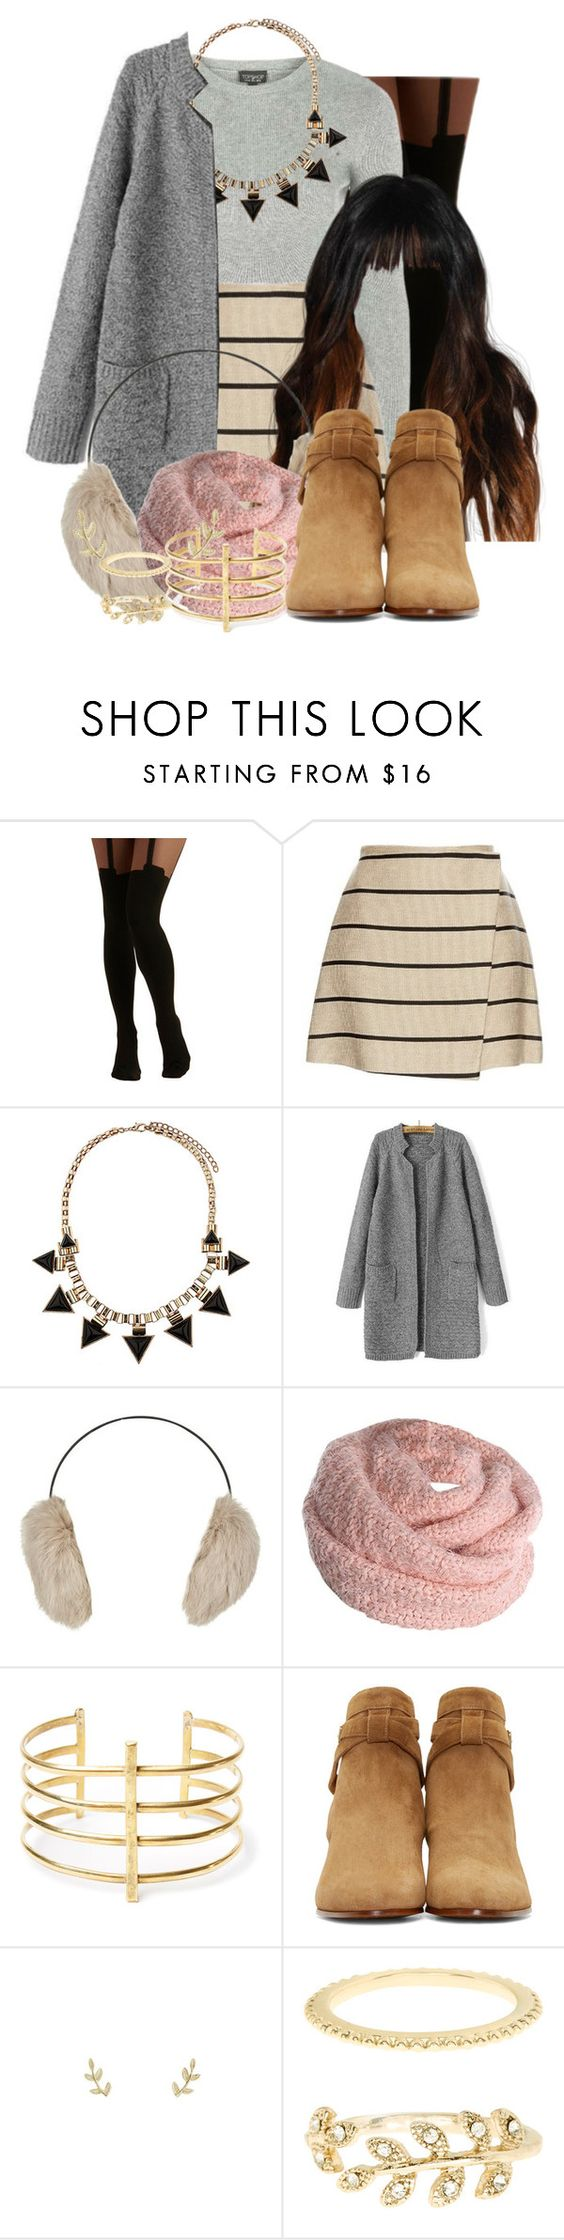 """""""Nova Castle Inspired Outfit"""" by grandmasfood ❤ liked on Polyvore featuring Pretty Polly, Topshop, MSGM, Yves Salomon, BauXo, Yves Saint Laurent and Accessorize"""